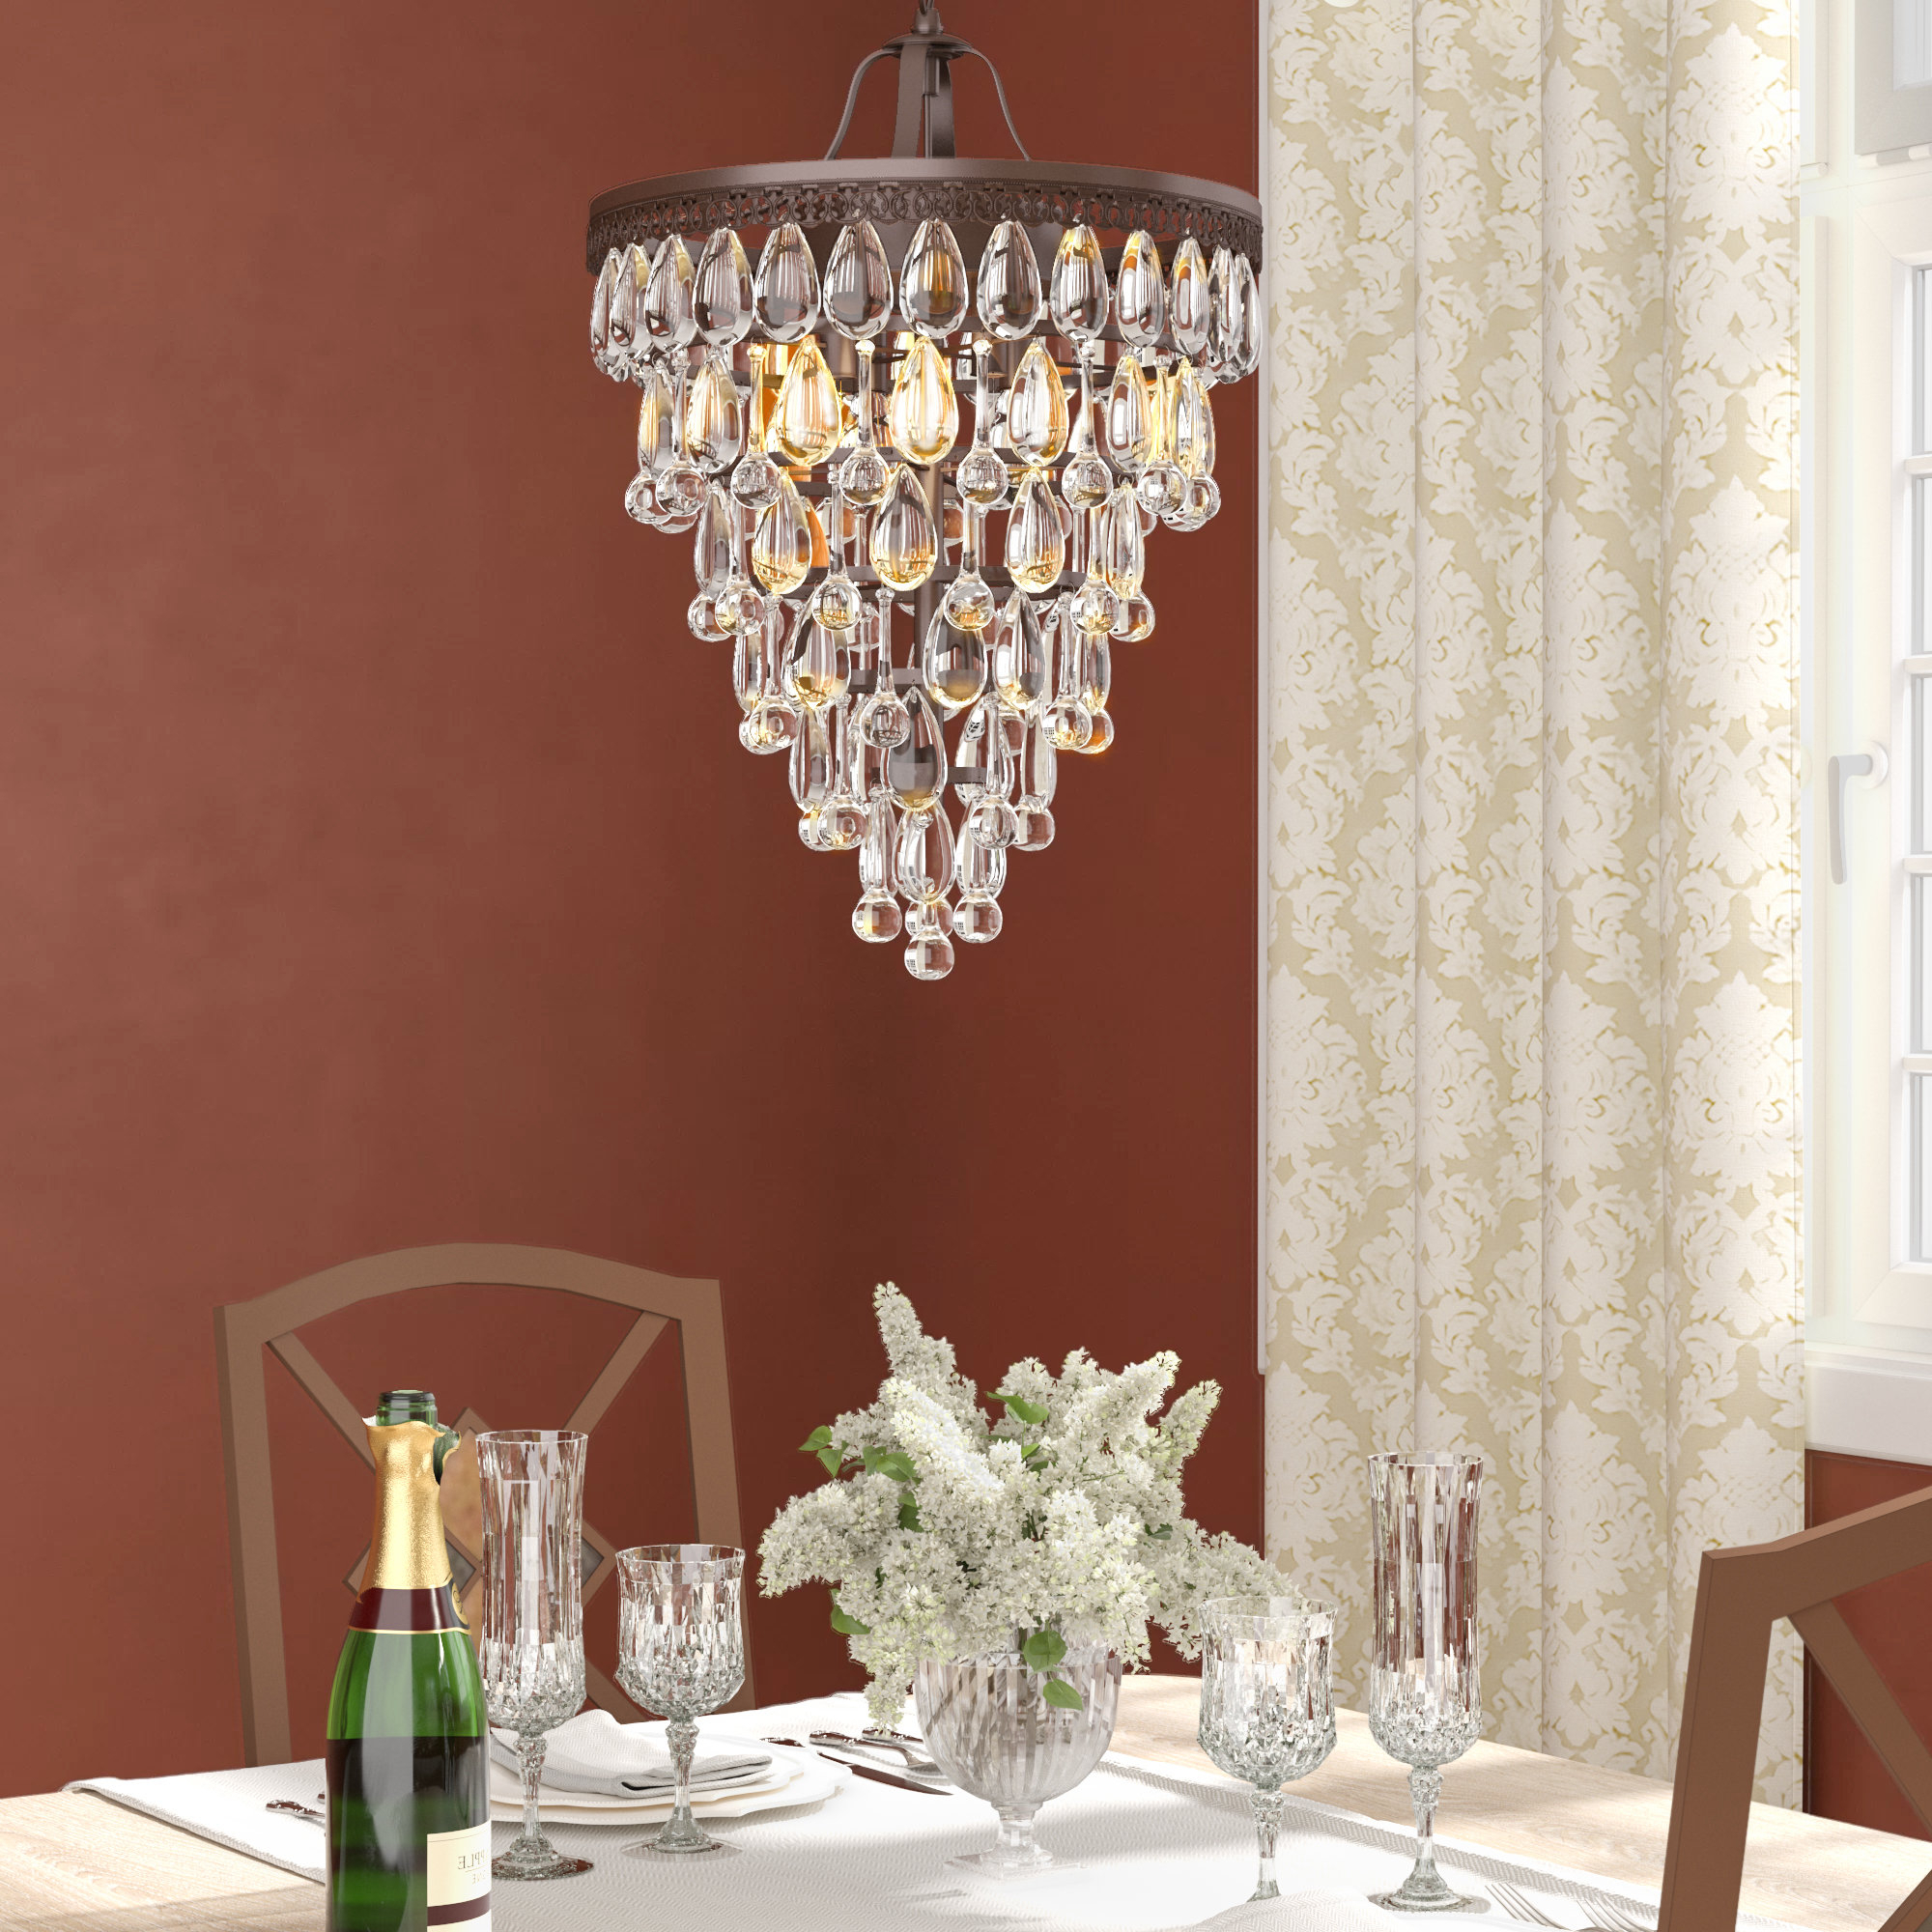 Trujillo 4 Light Crystal Chandelier For Widely Used Aurore 4 Light Crystal Chandeliers (View 14 of 20)